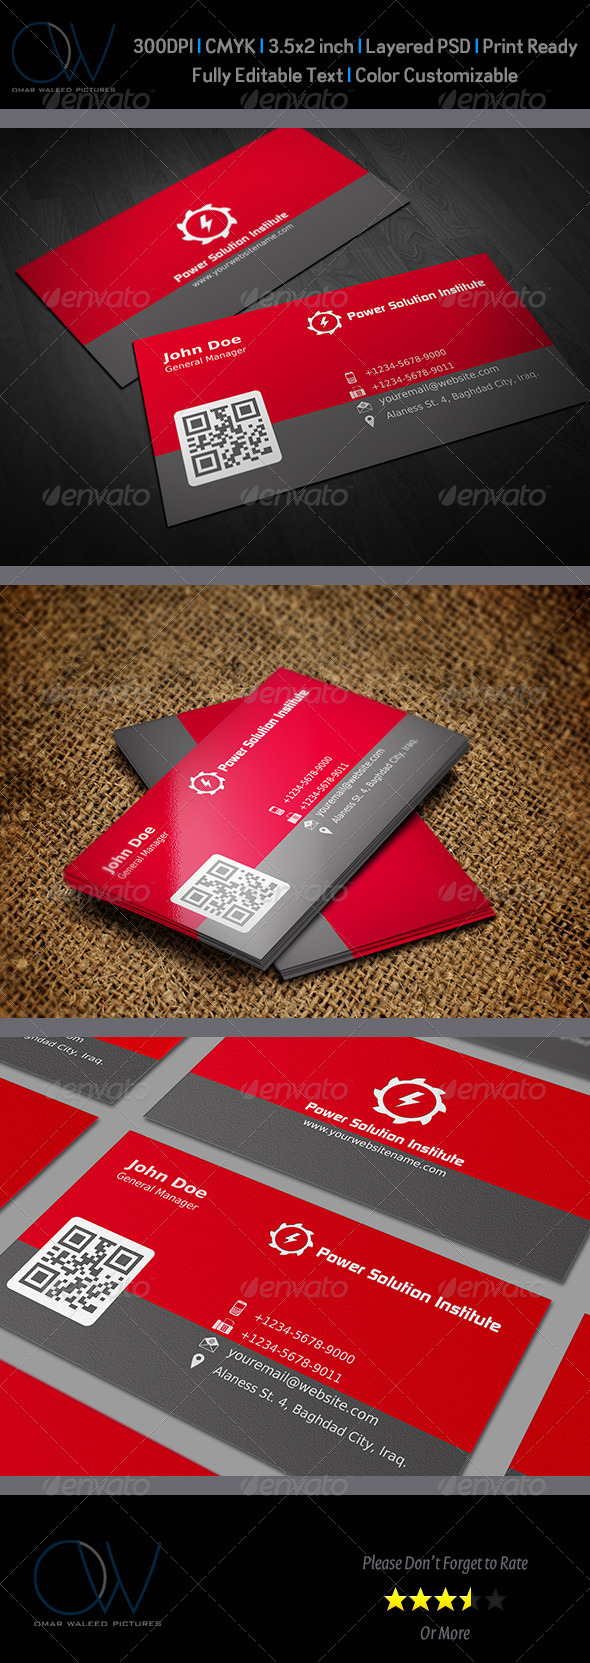 GraphicRiver Corporate Business Card Vol.6 3427744